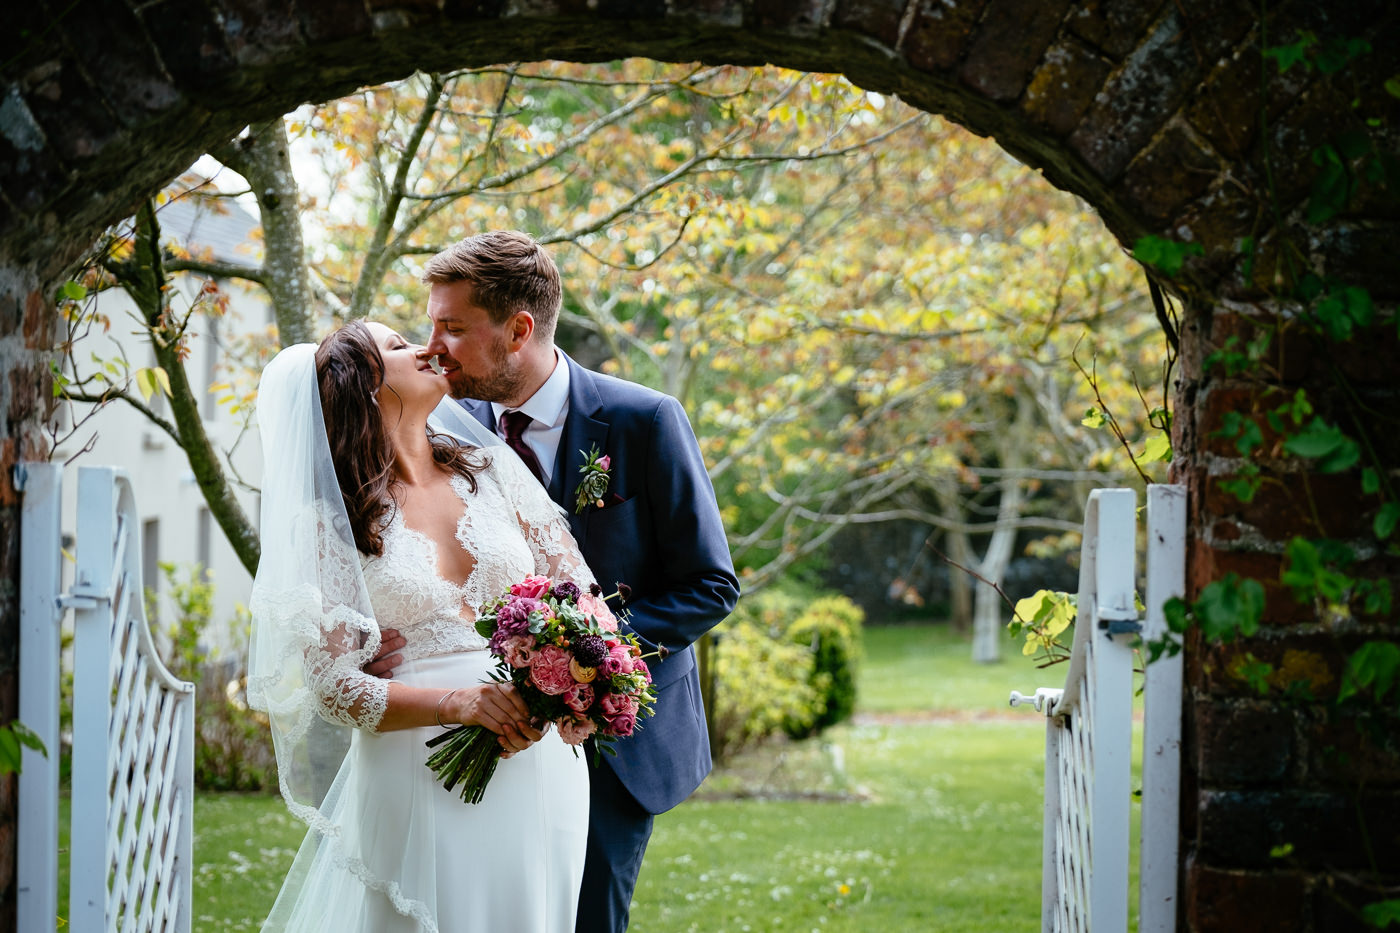 kilshane house wedding photographer tipperary 0524